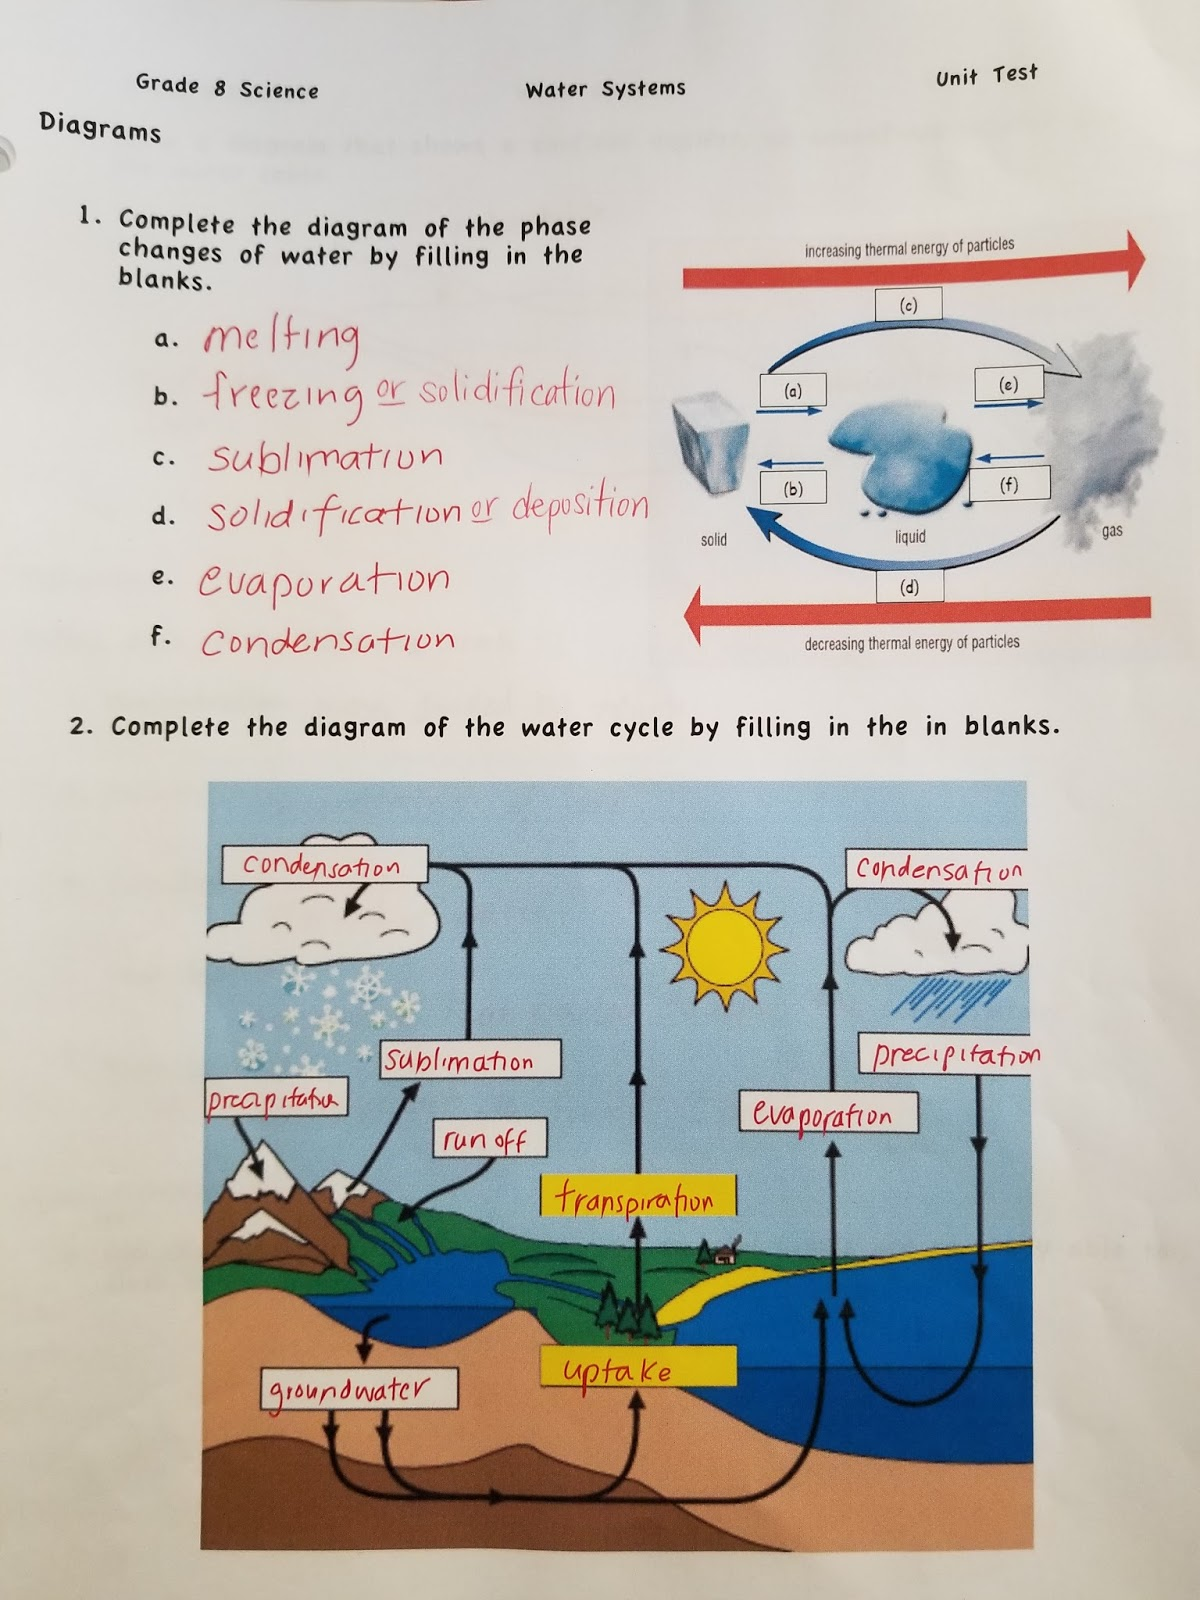 small resolution of grade 8 science quiz on water systems on thursday may 3rd